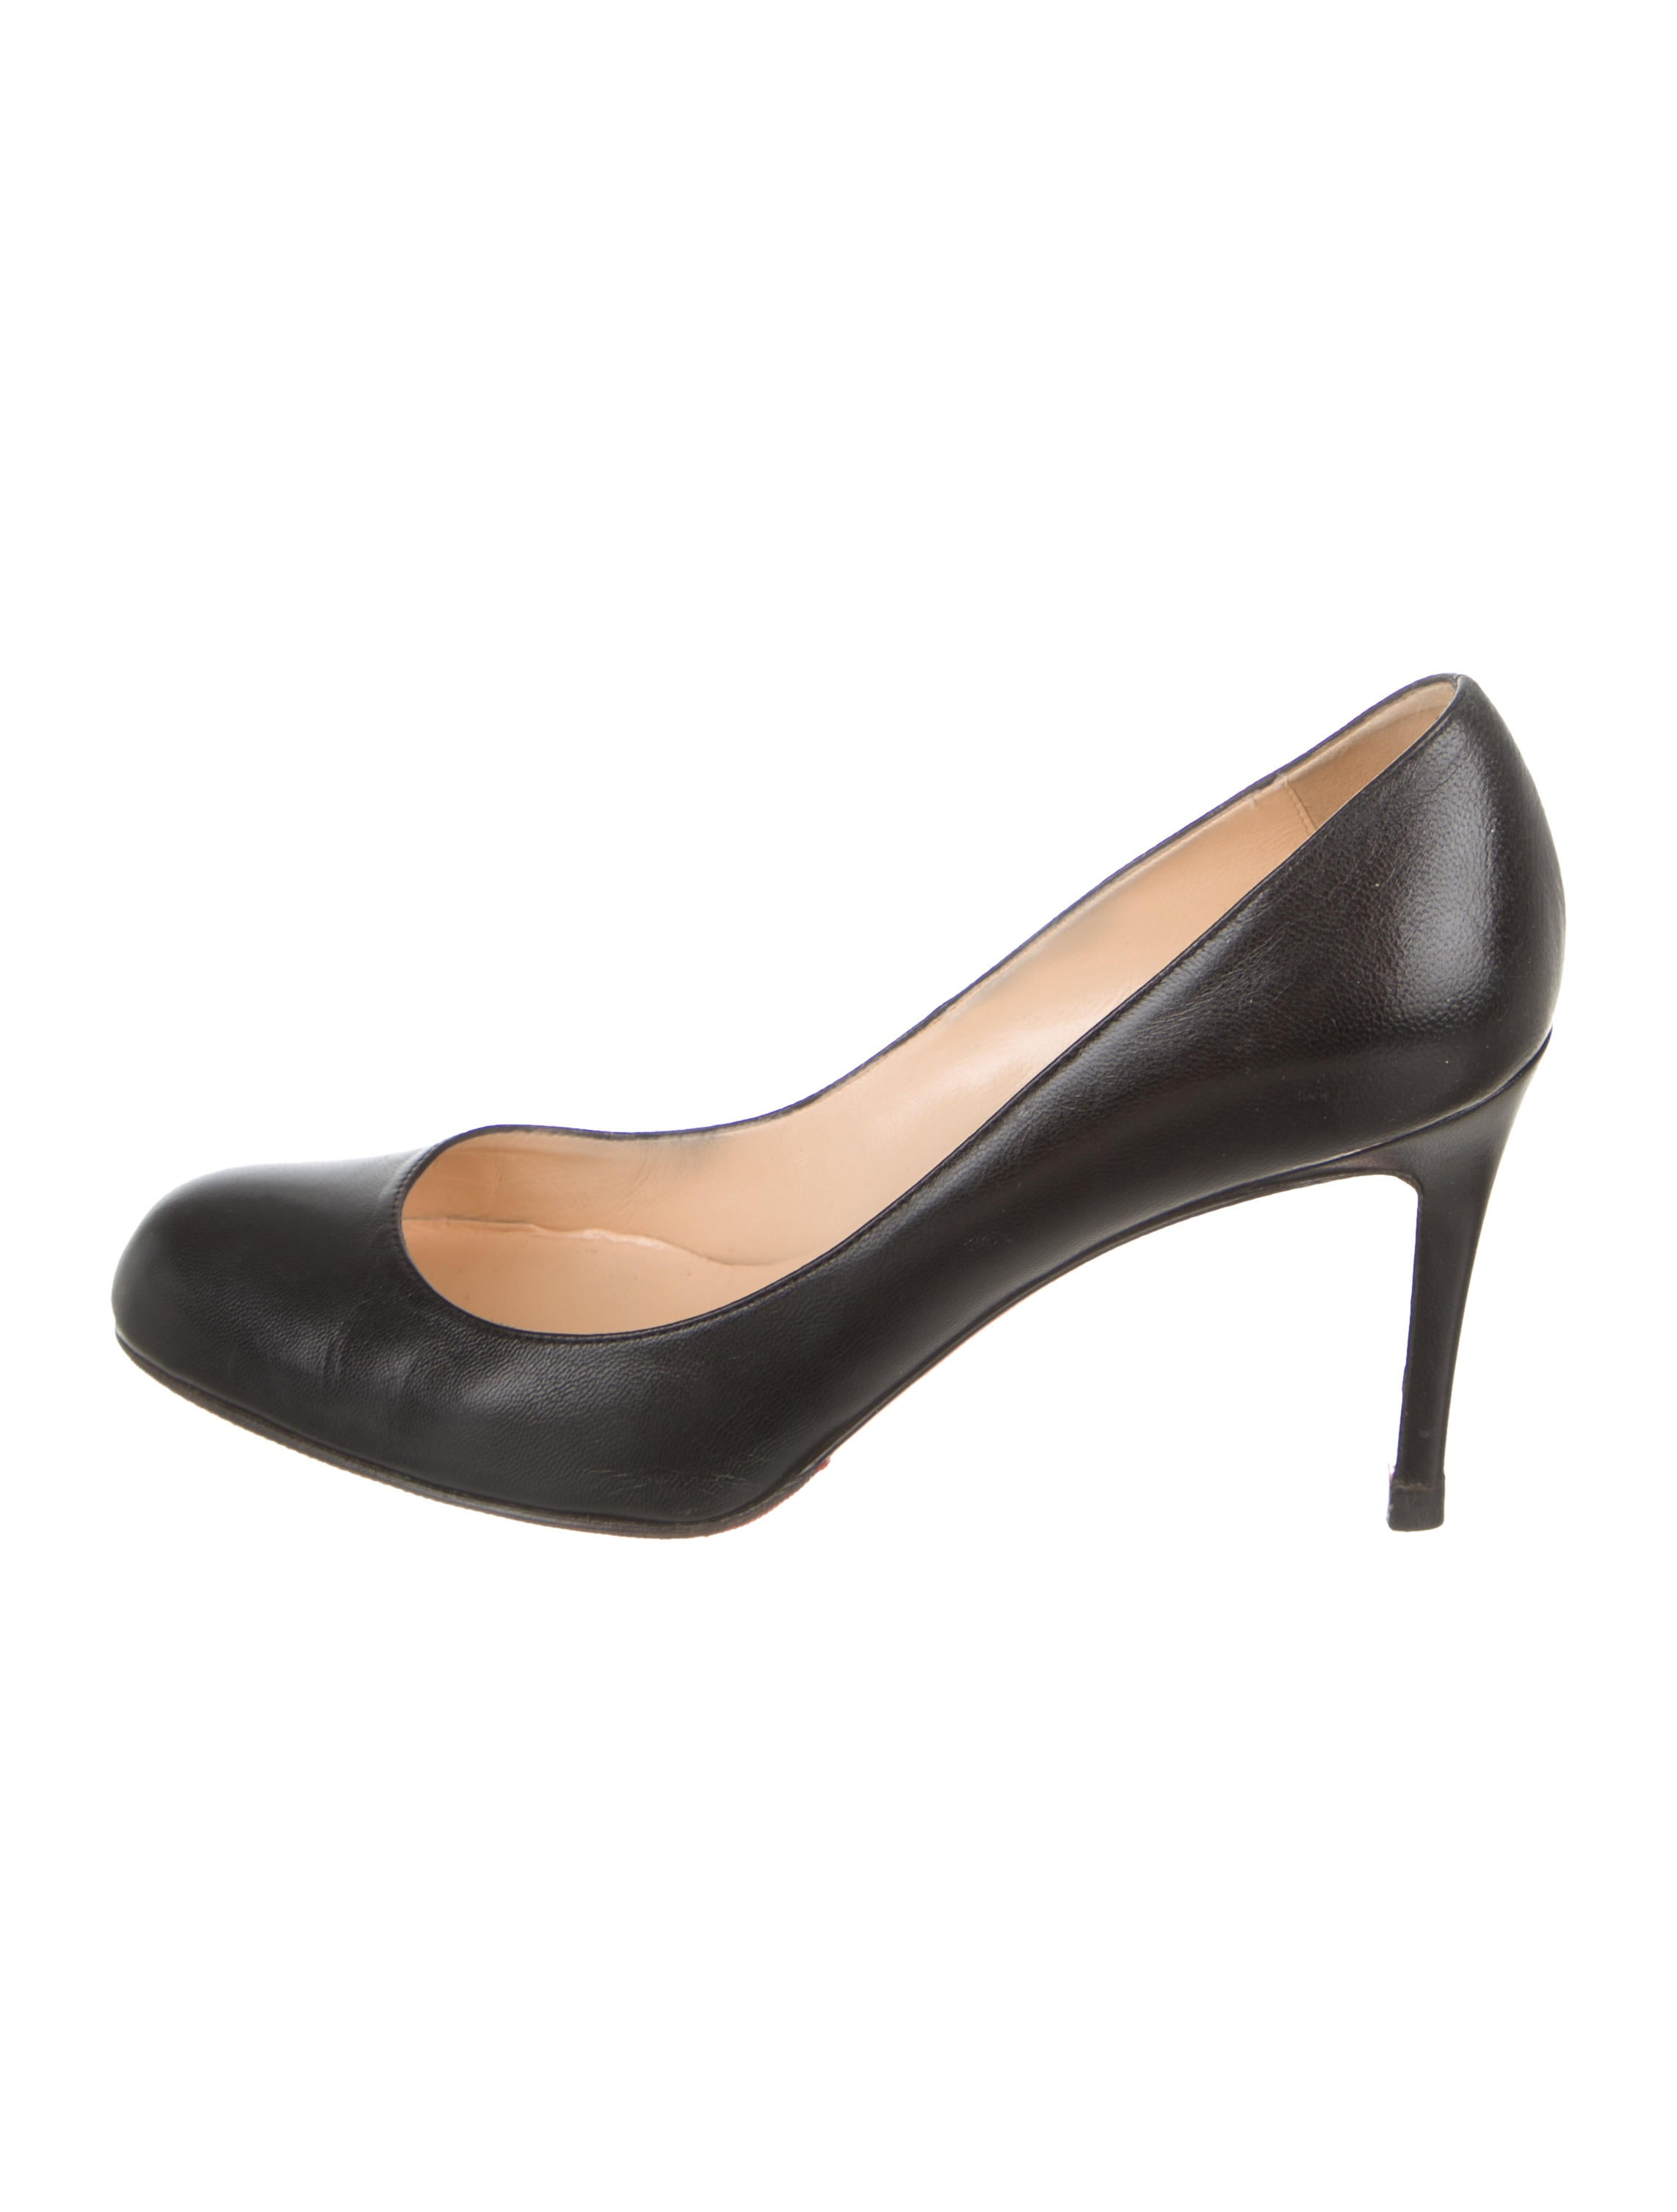 Christian Louboutin Simple 85 Pumps - Shoes - CHT121030  3316457a25